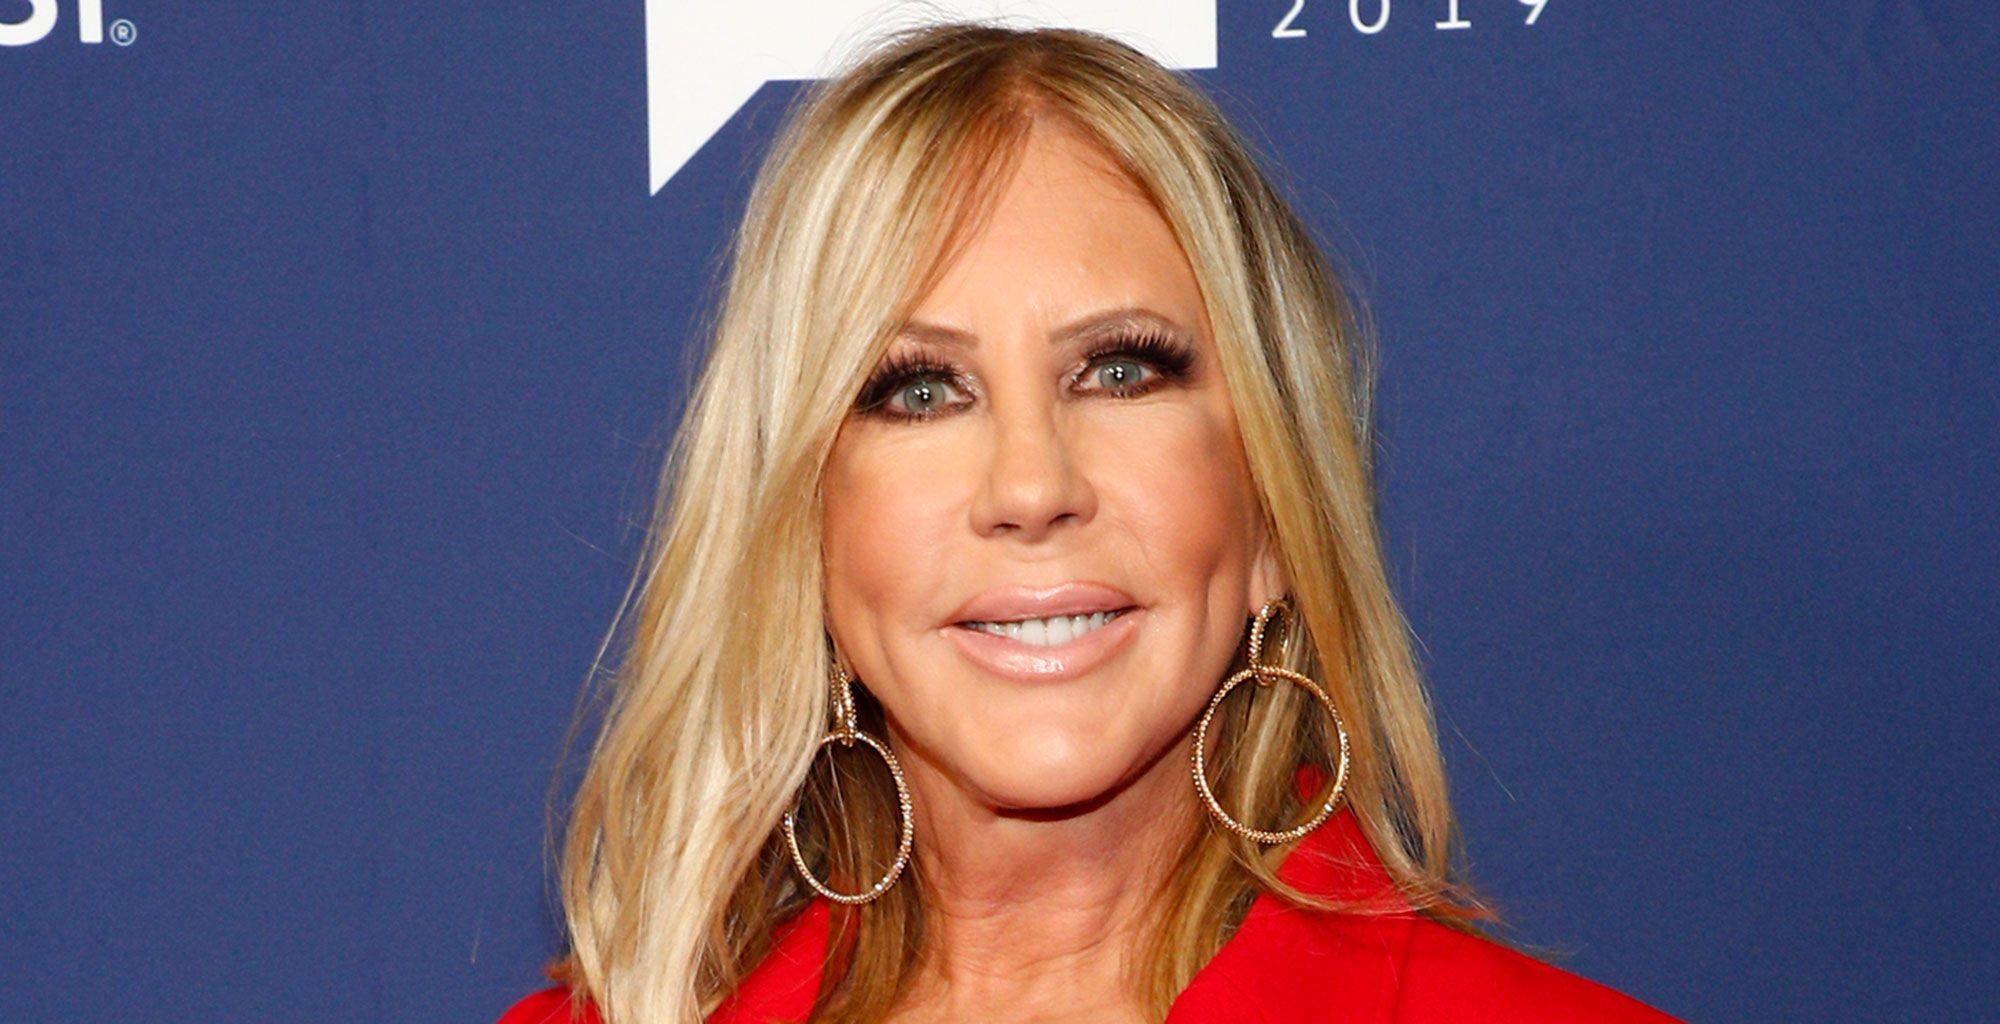 Vicki Gunvalson Says The Last Years Before Her RHOC Exit Were 'Tough' - I Went 'Crazy!'